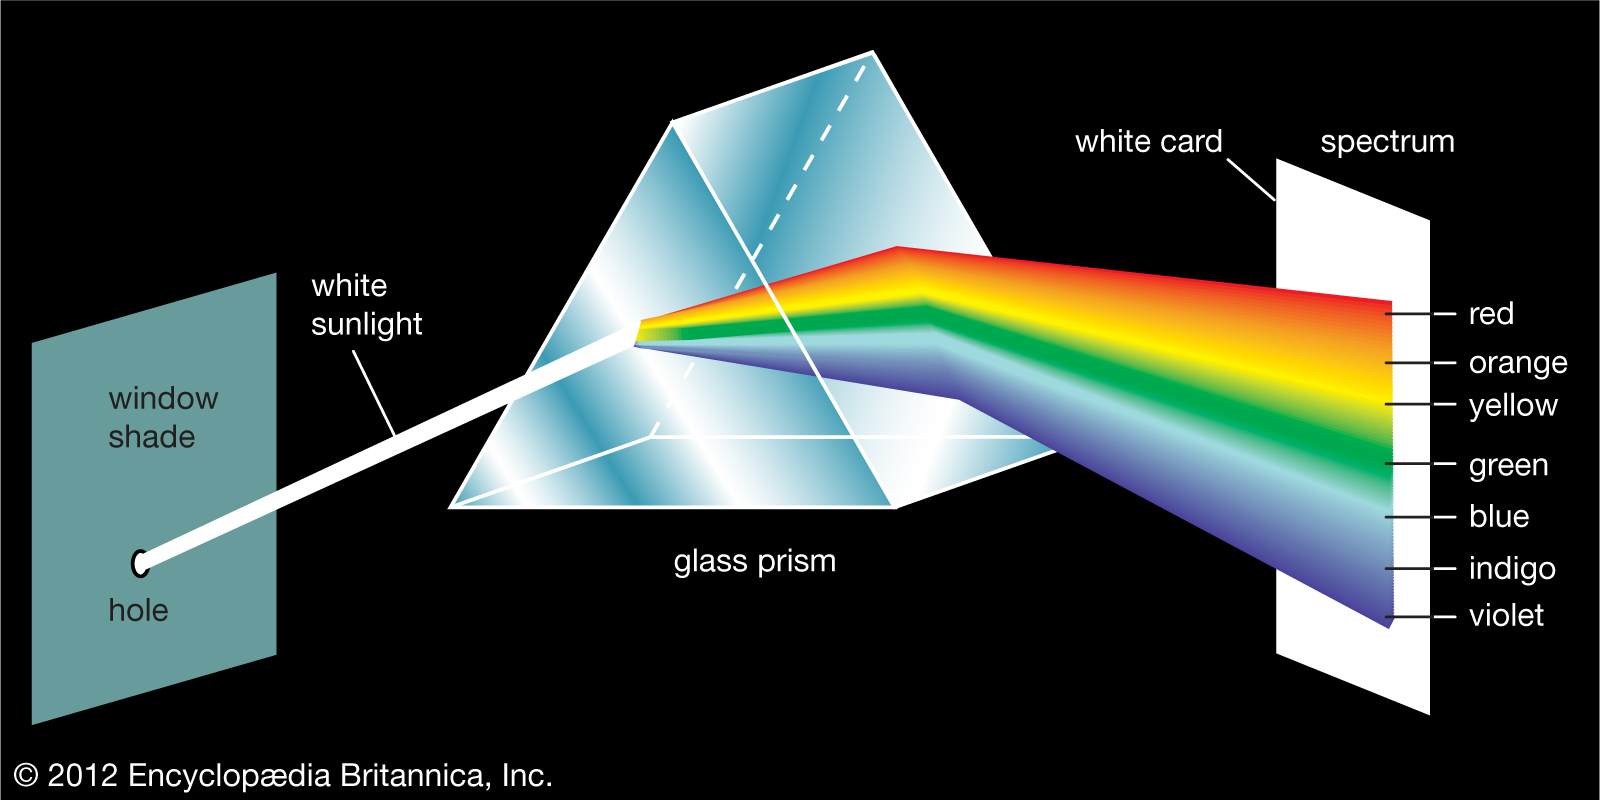 content/images/colour-theory/prism.jpg